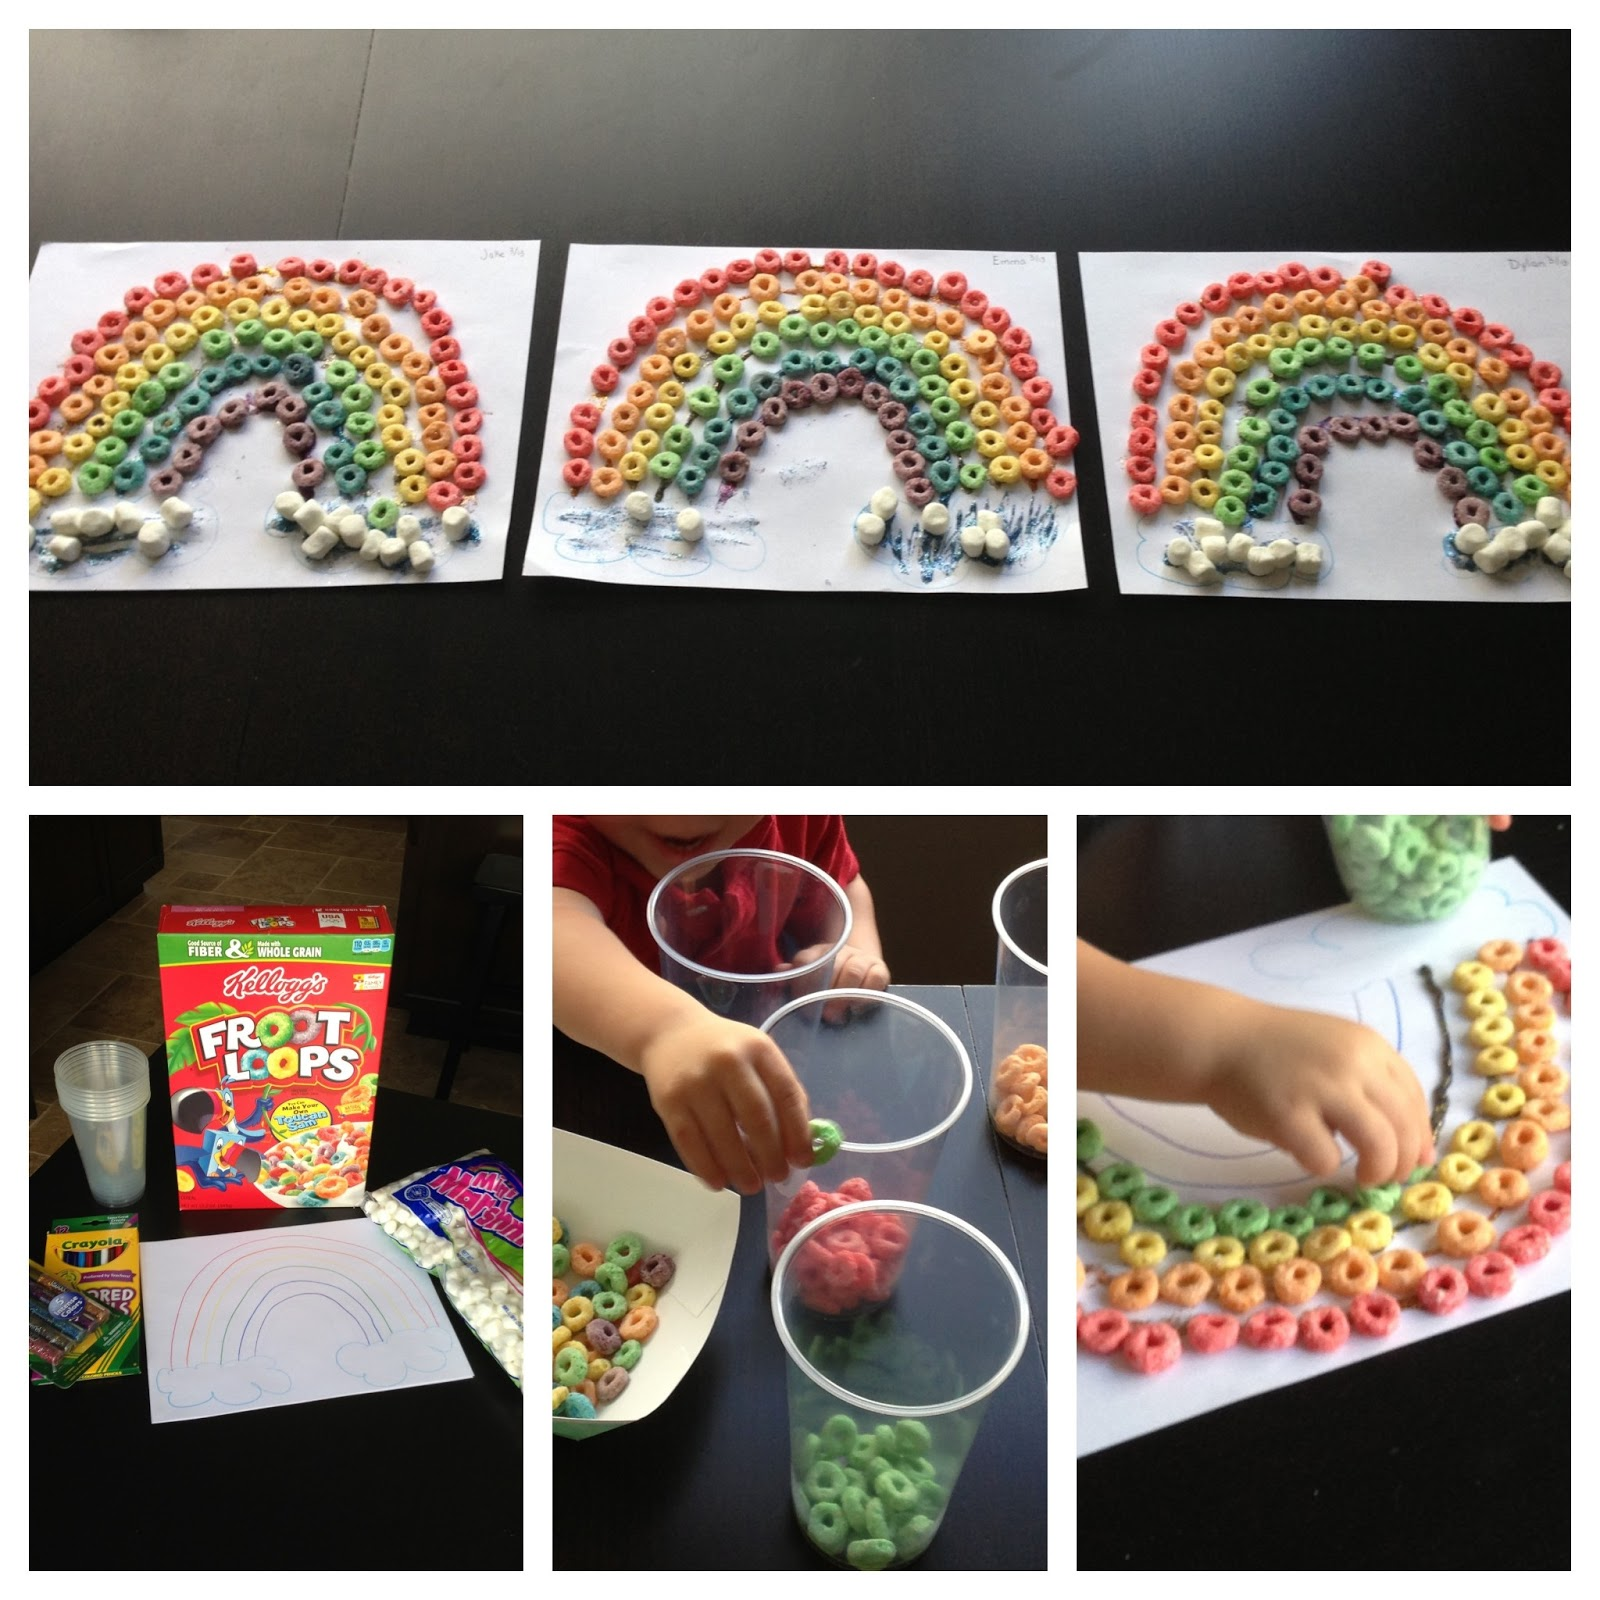 Party Of 5 Snacktivity Fruit Loop Rainbows